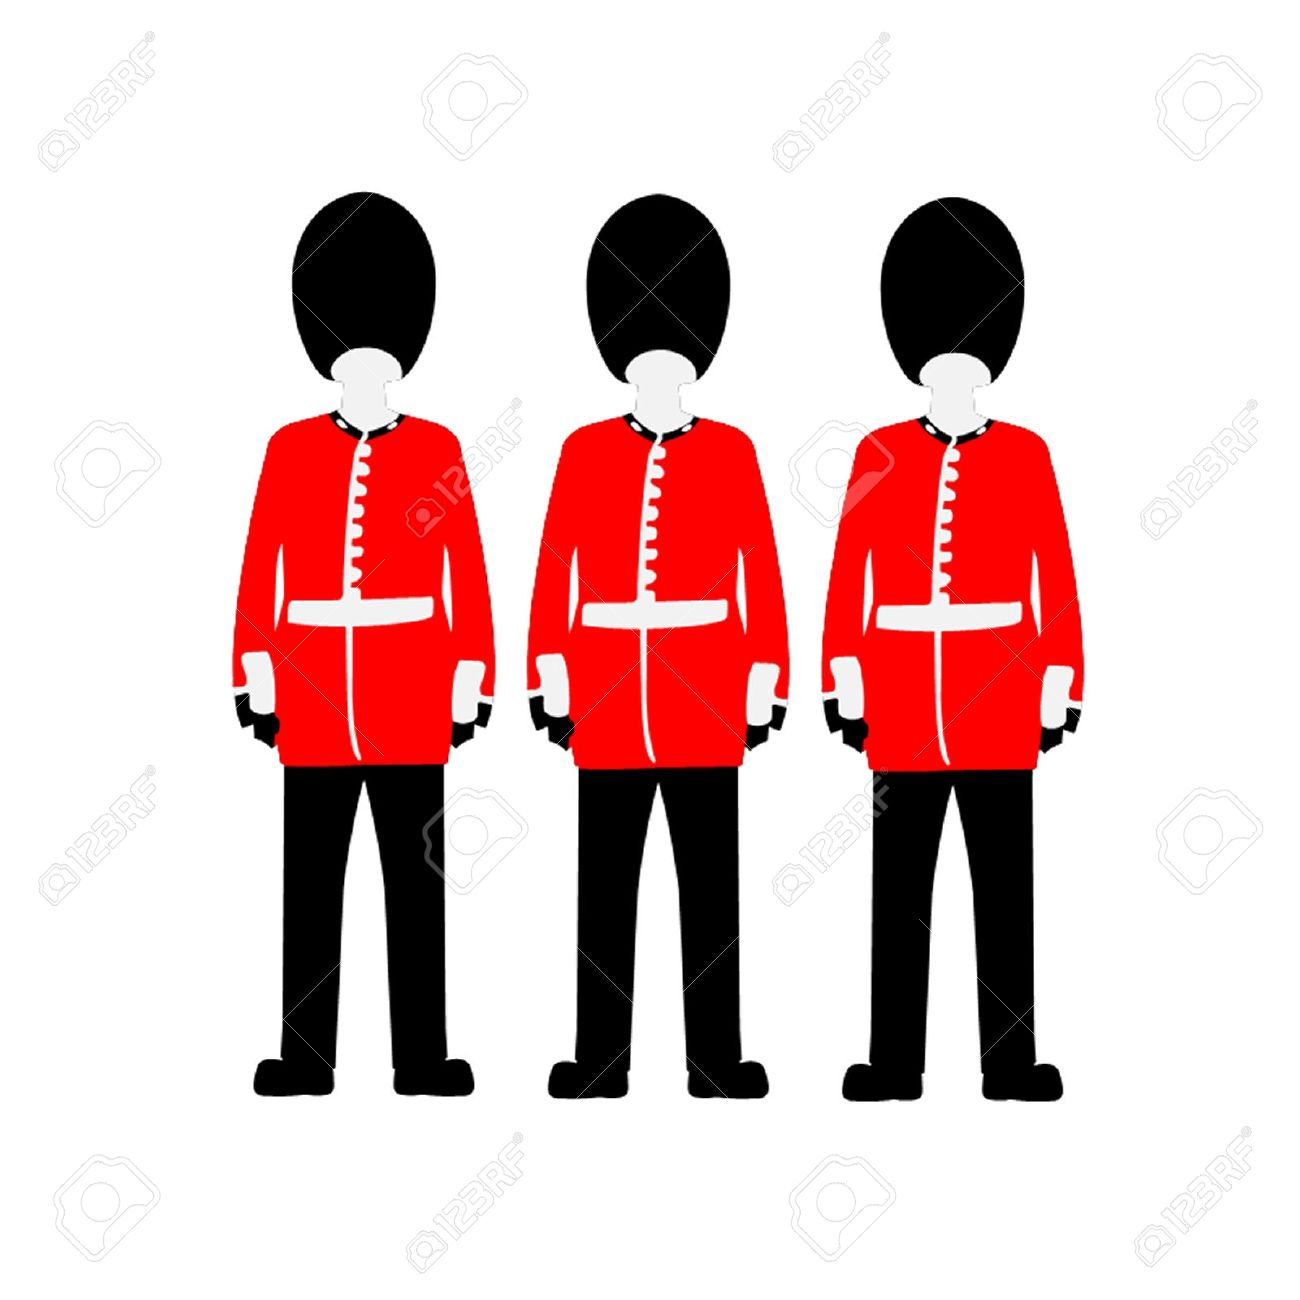 Queen of england clipart image free library Queen S Guard Royalty Free Cliparts, Vectors, And Stock ... image free library